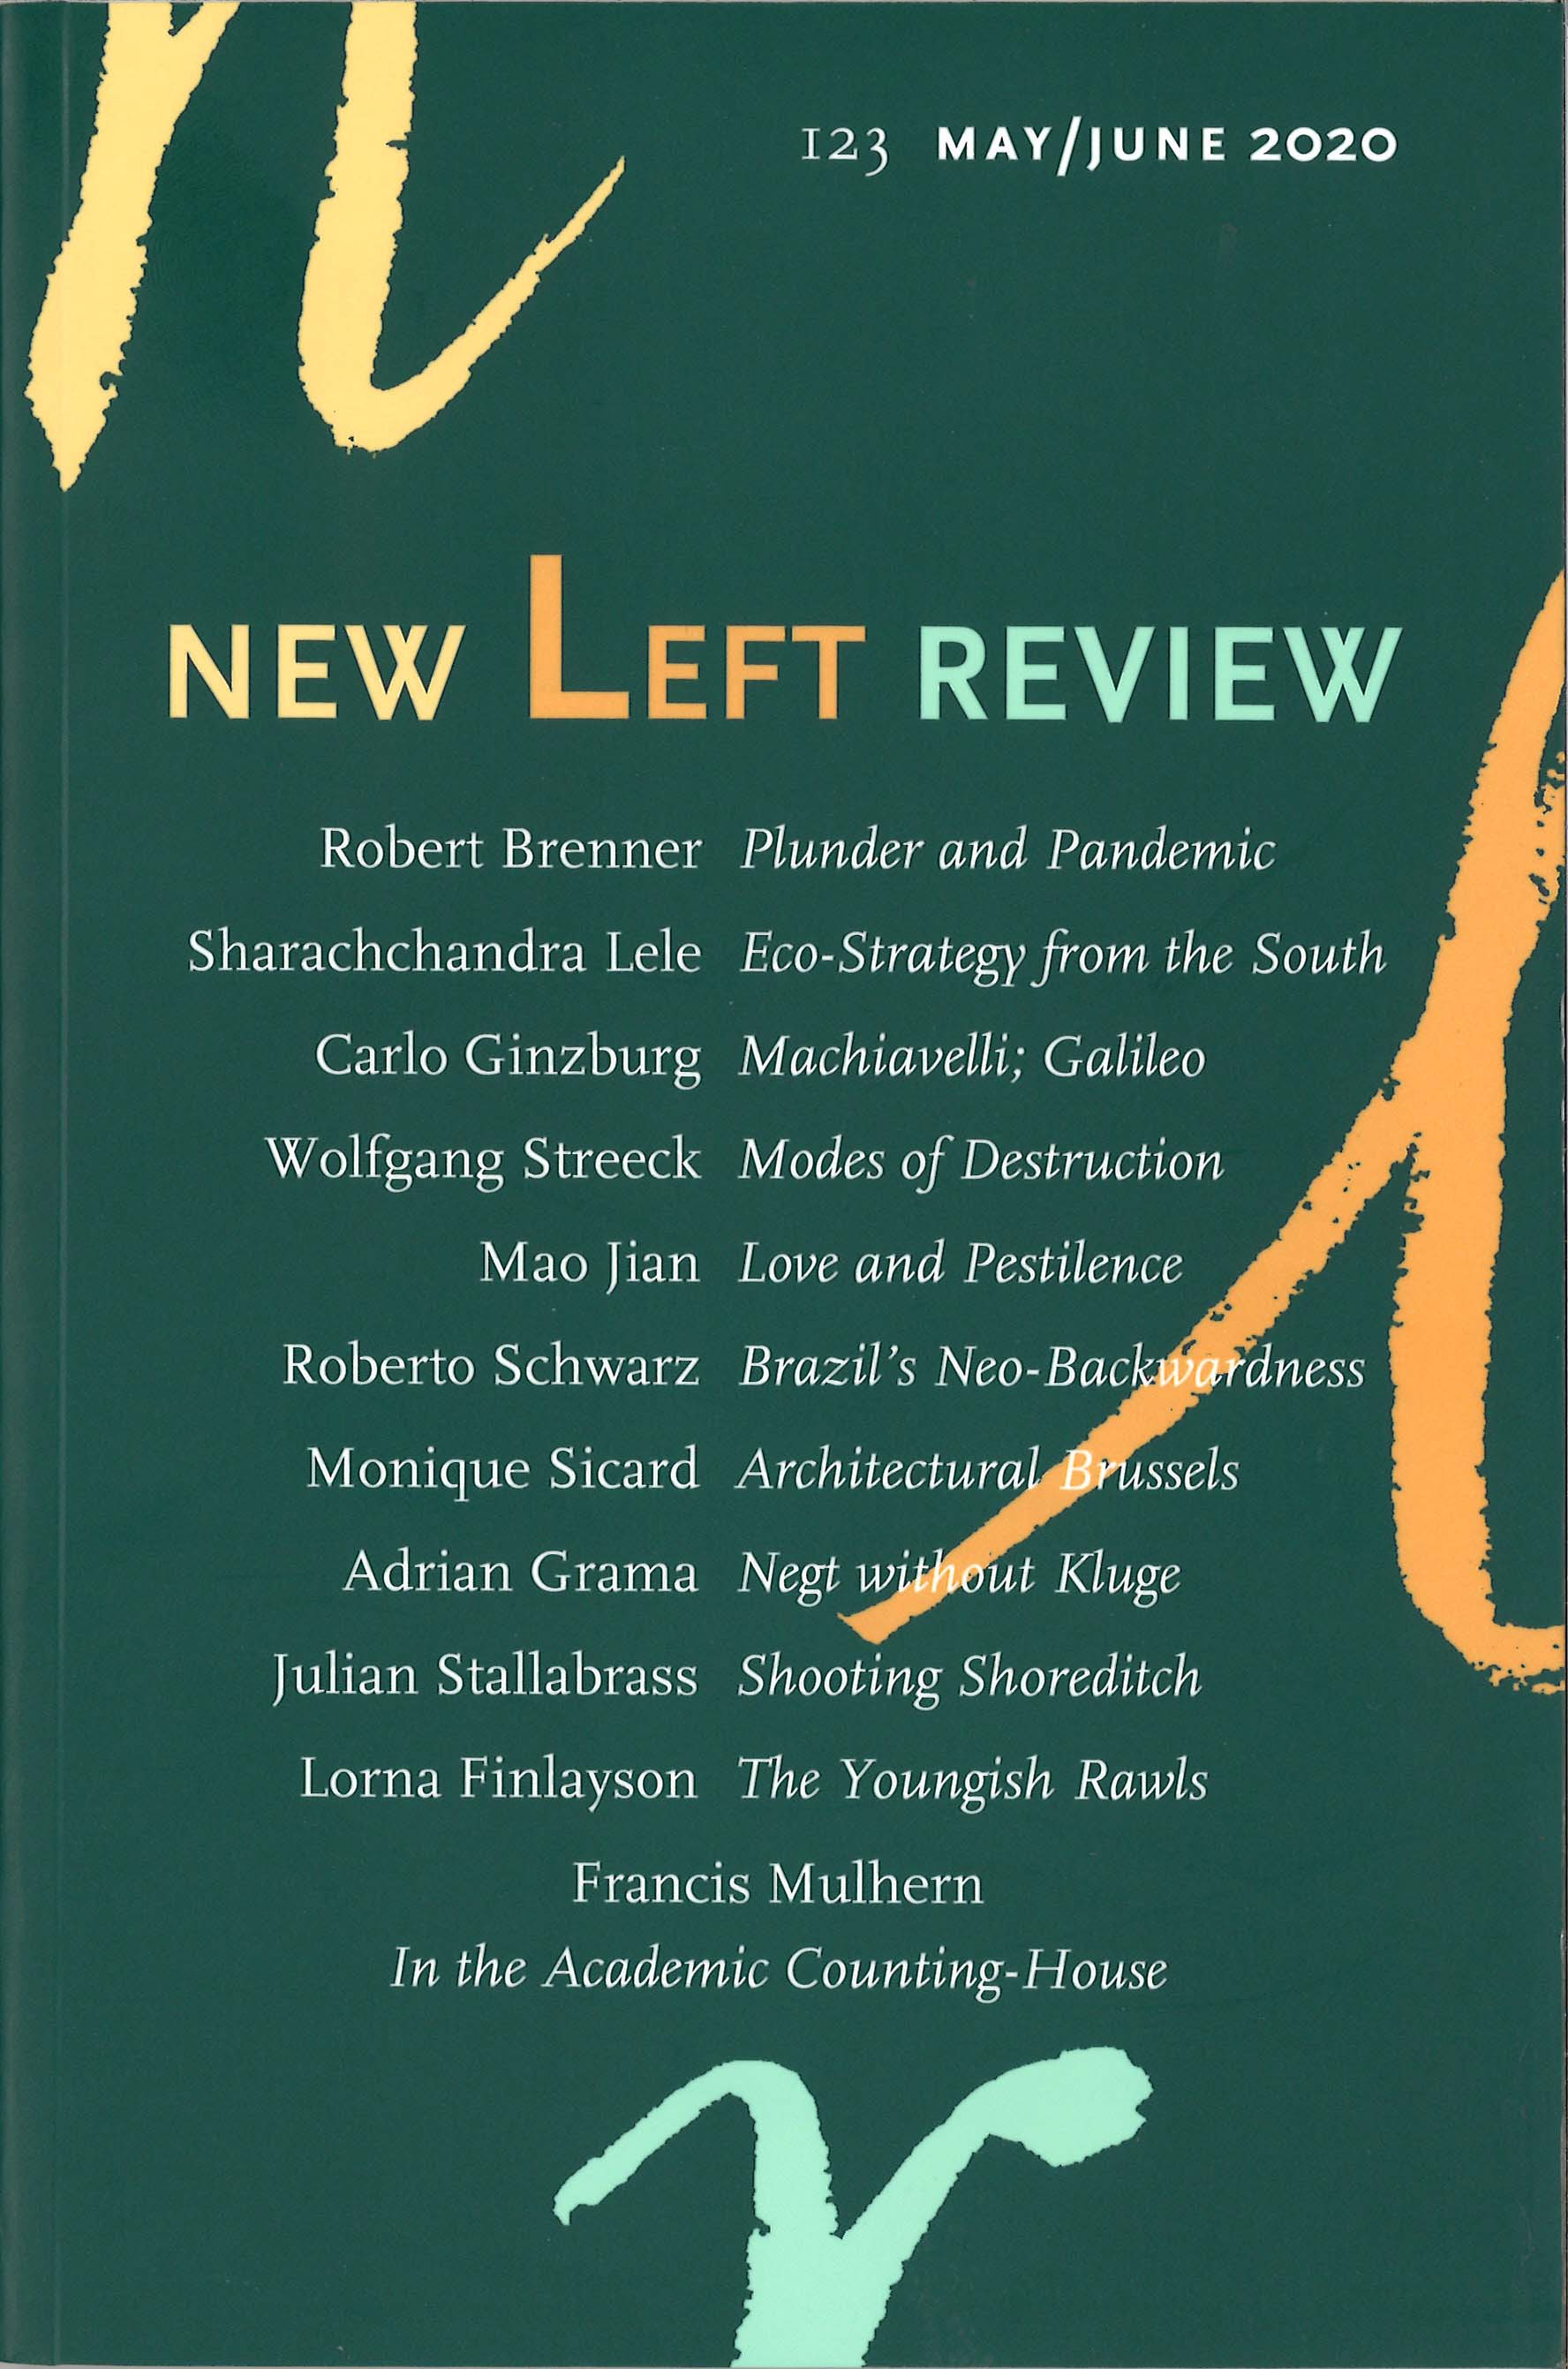 New Left Review 123 May/June 2020